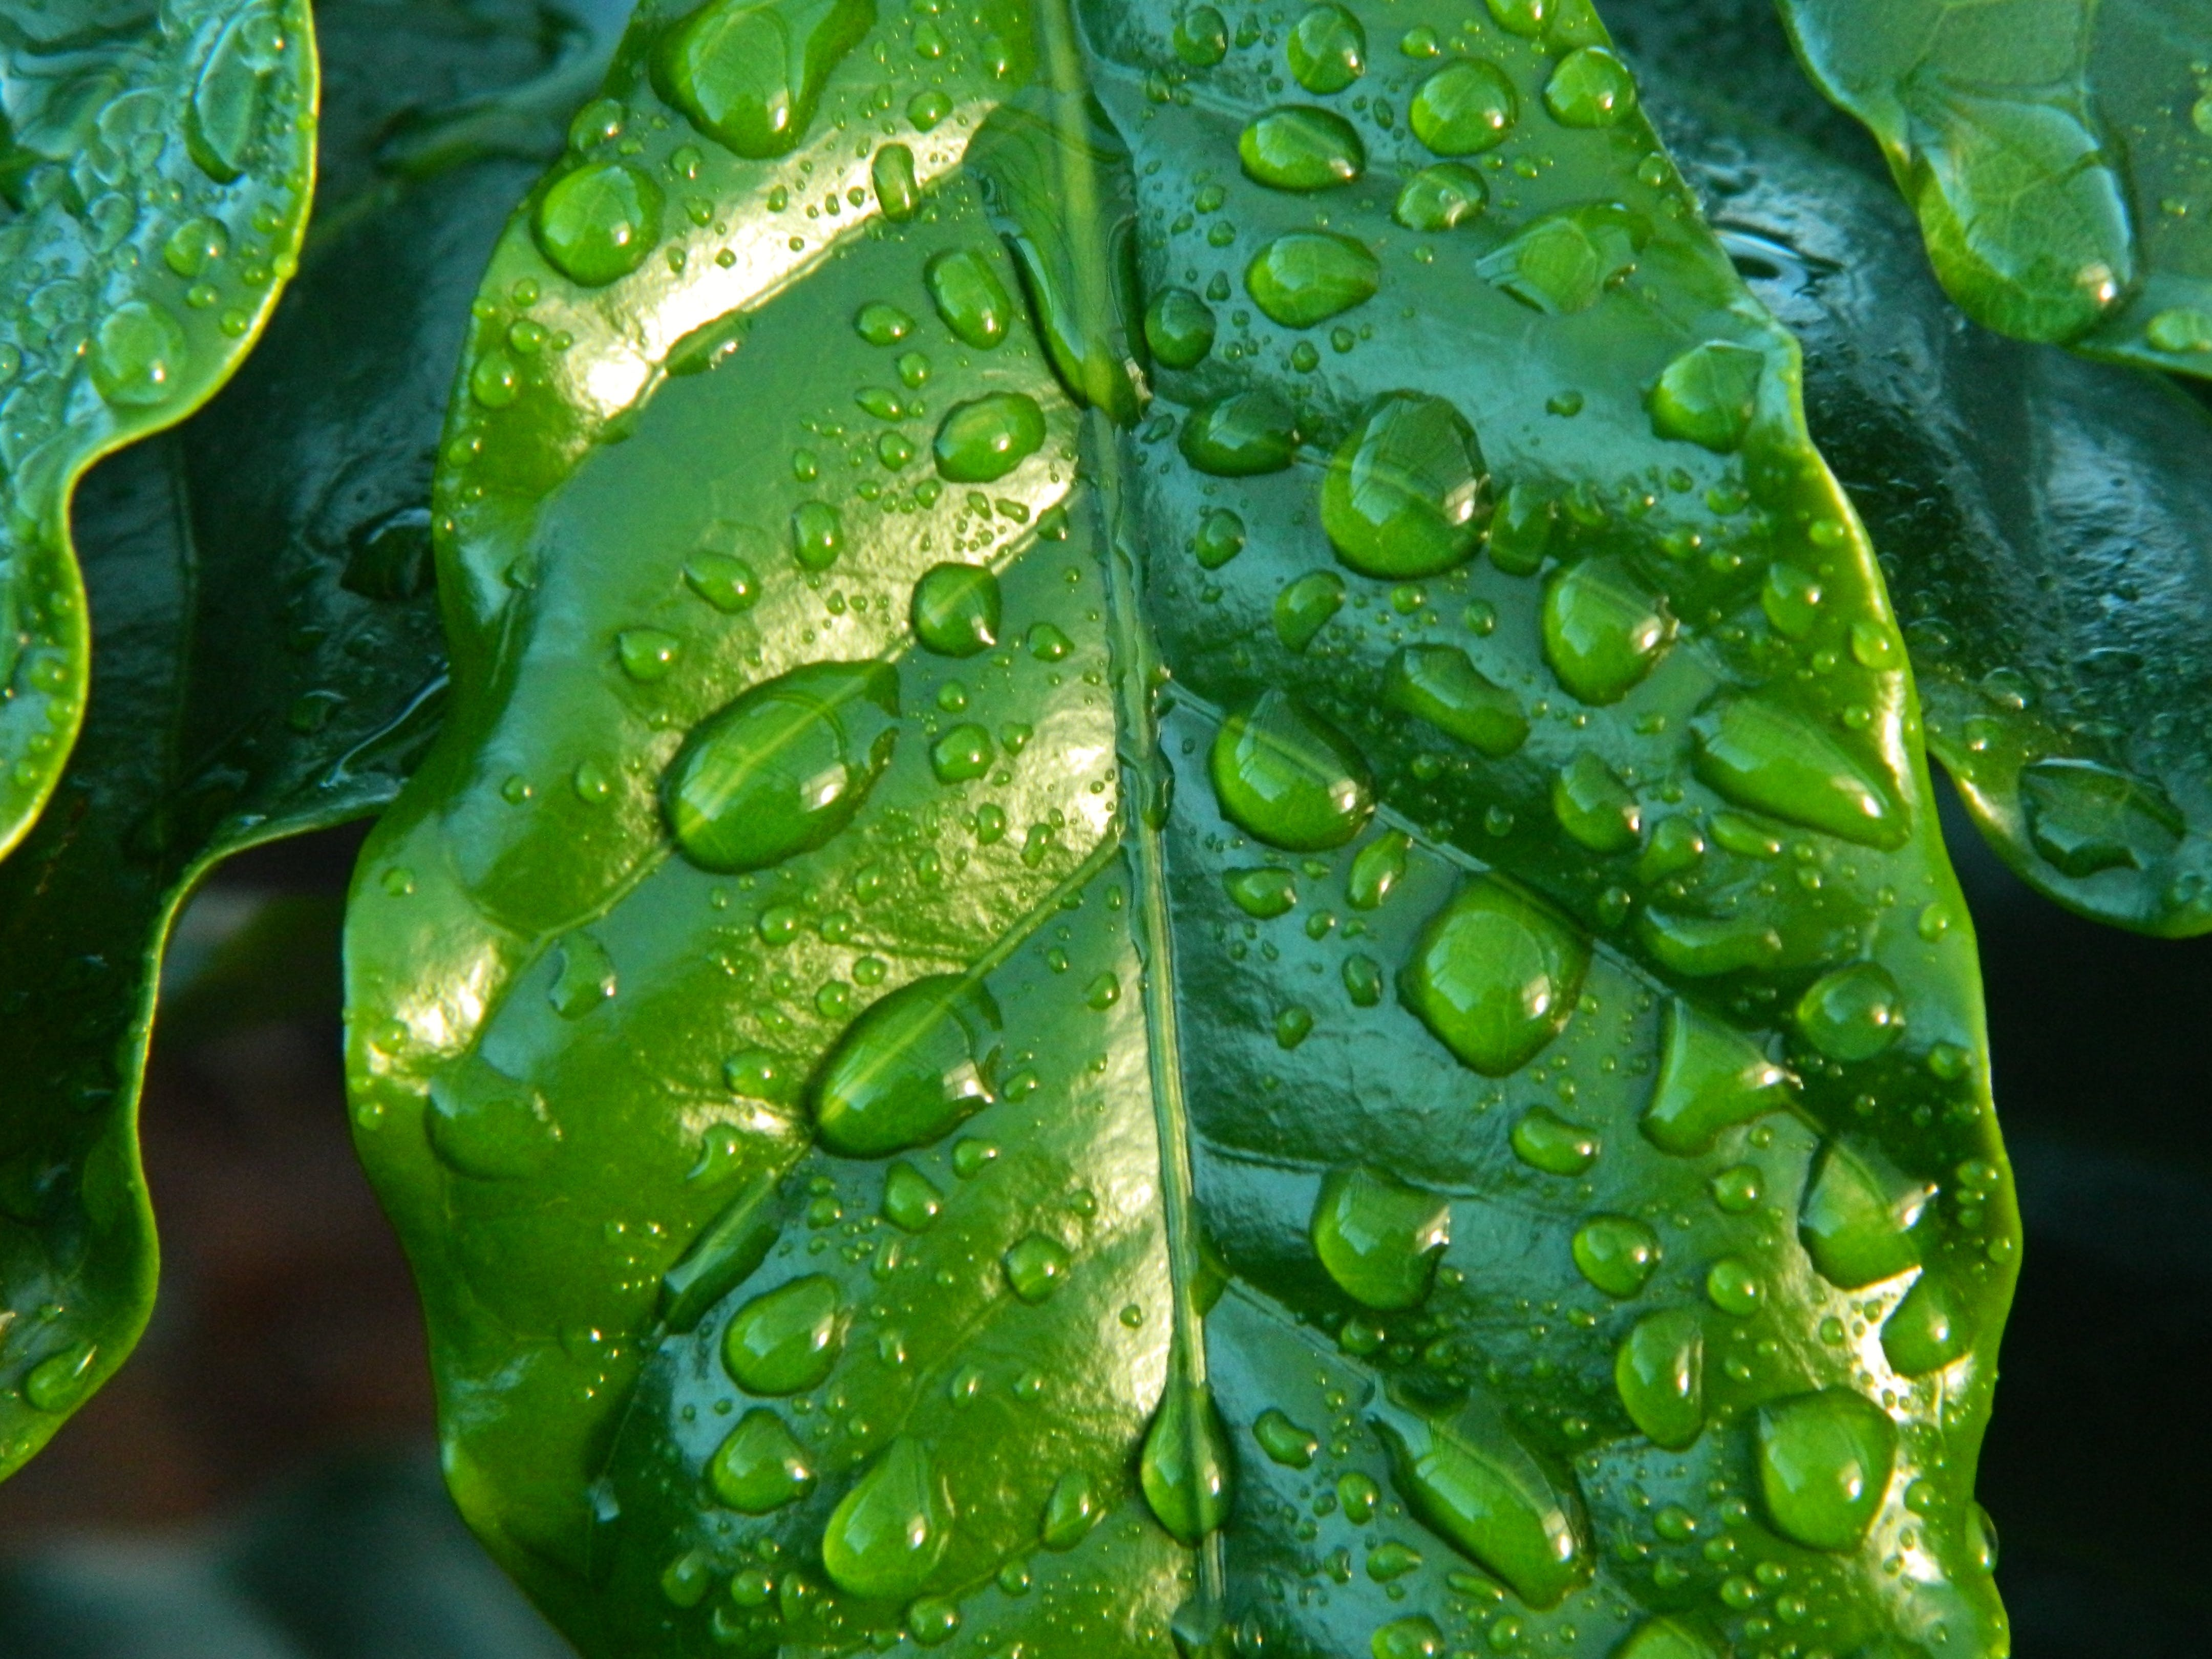 Close-up Photography of Leaf With Water Drops